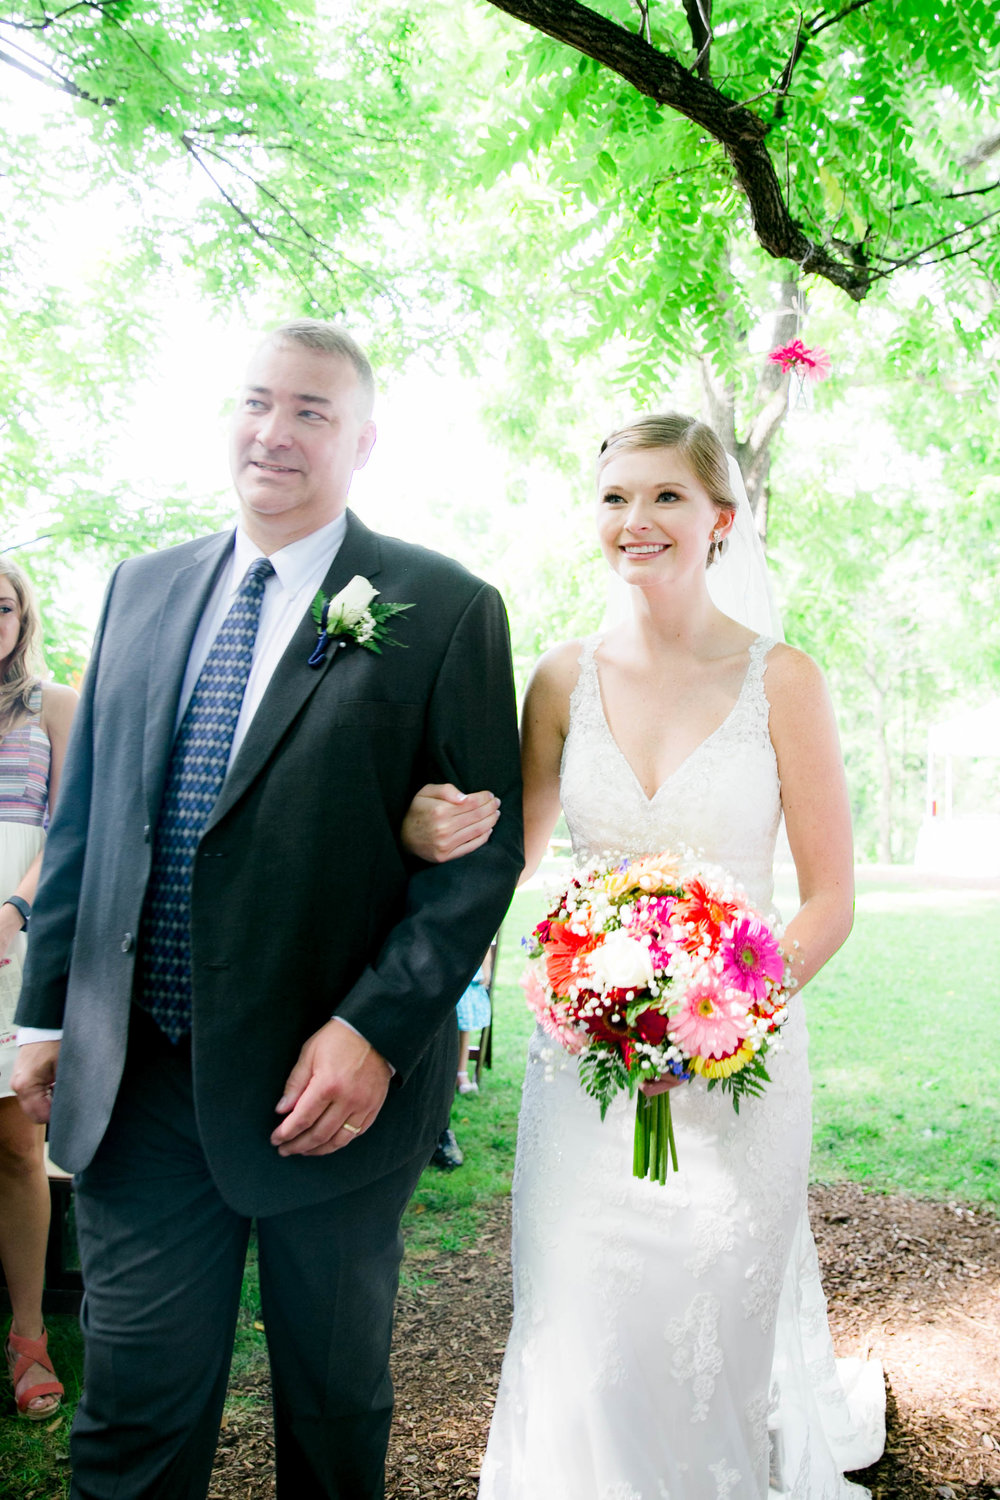 Hot Springs, NC wedding, East Tennessee Wedding photography, wedding ceremony, bridal processional